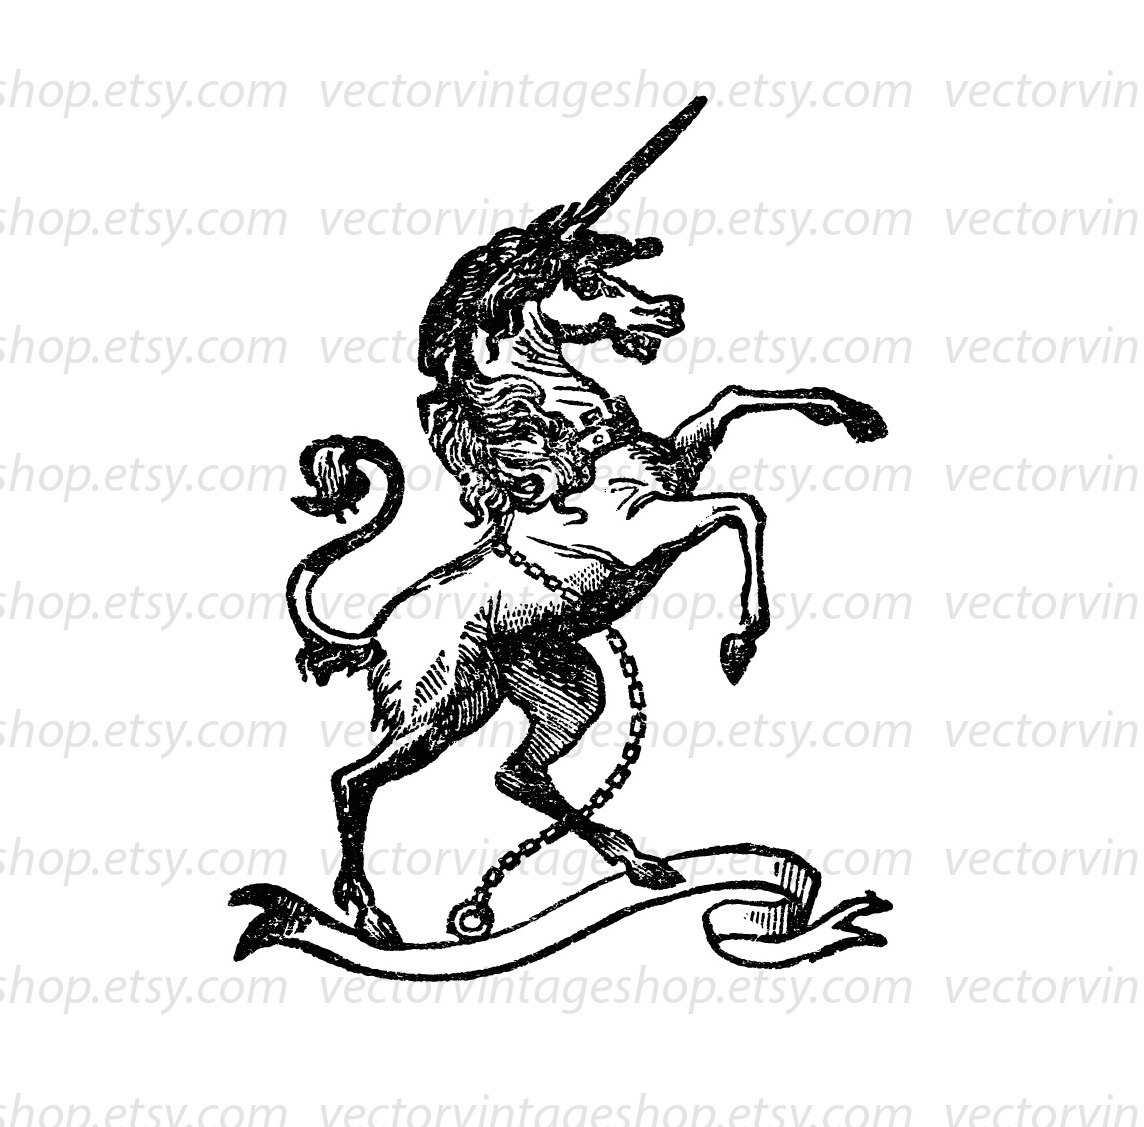 1144x1127 Unicorn Vector Graphic Instant Download, Medieval Myth Clip Art